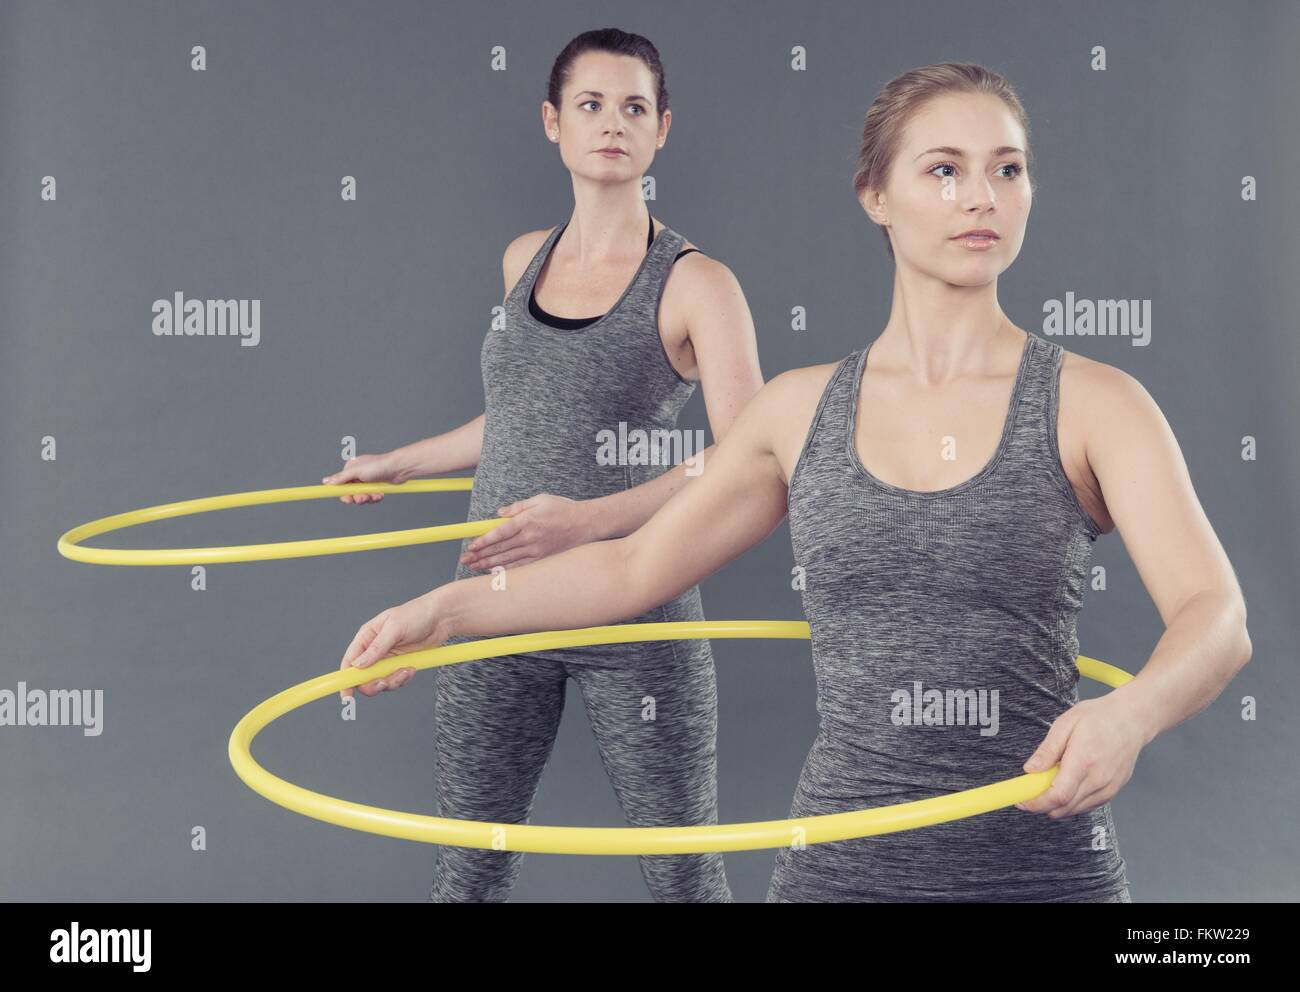 Young women practising with hula hoop, grey background - Stock Image